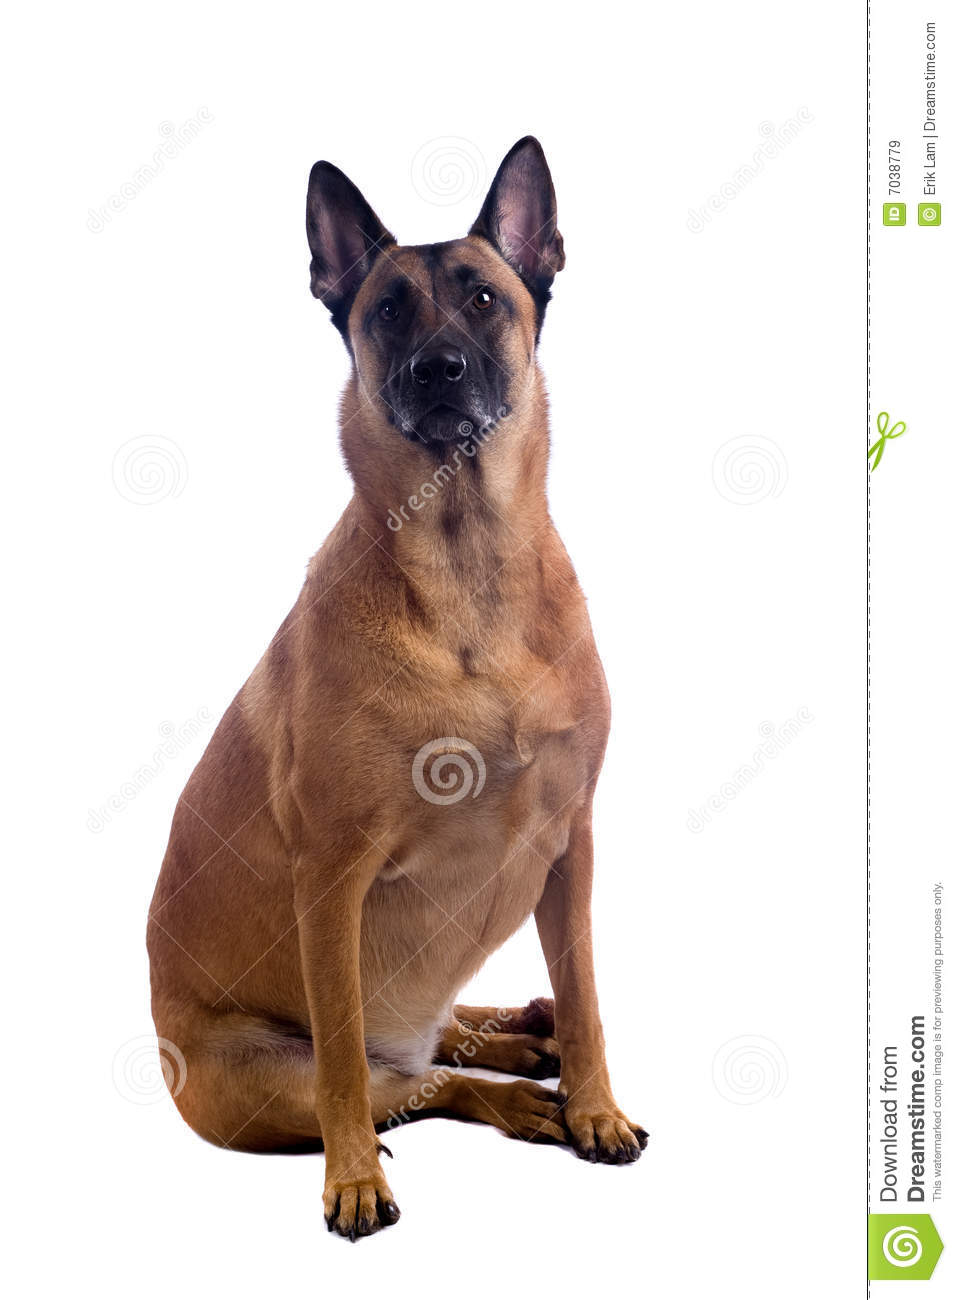 Belgian Shepherd Dog Royalty Free Stock Images - Image: 7038779